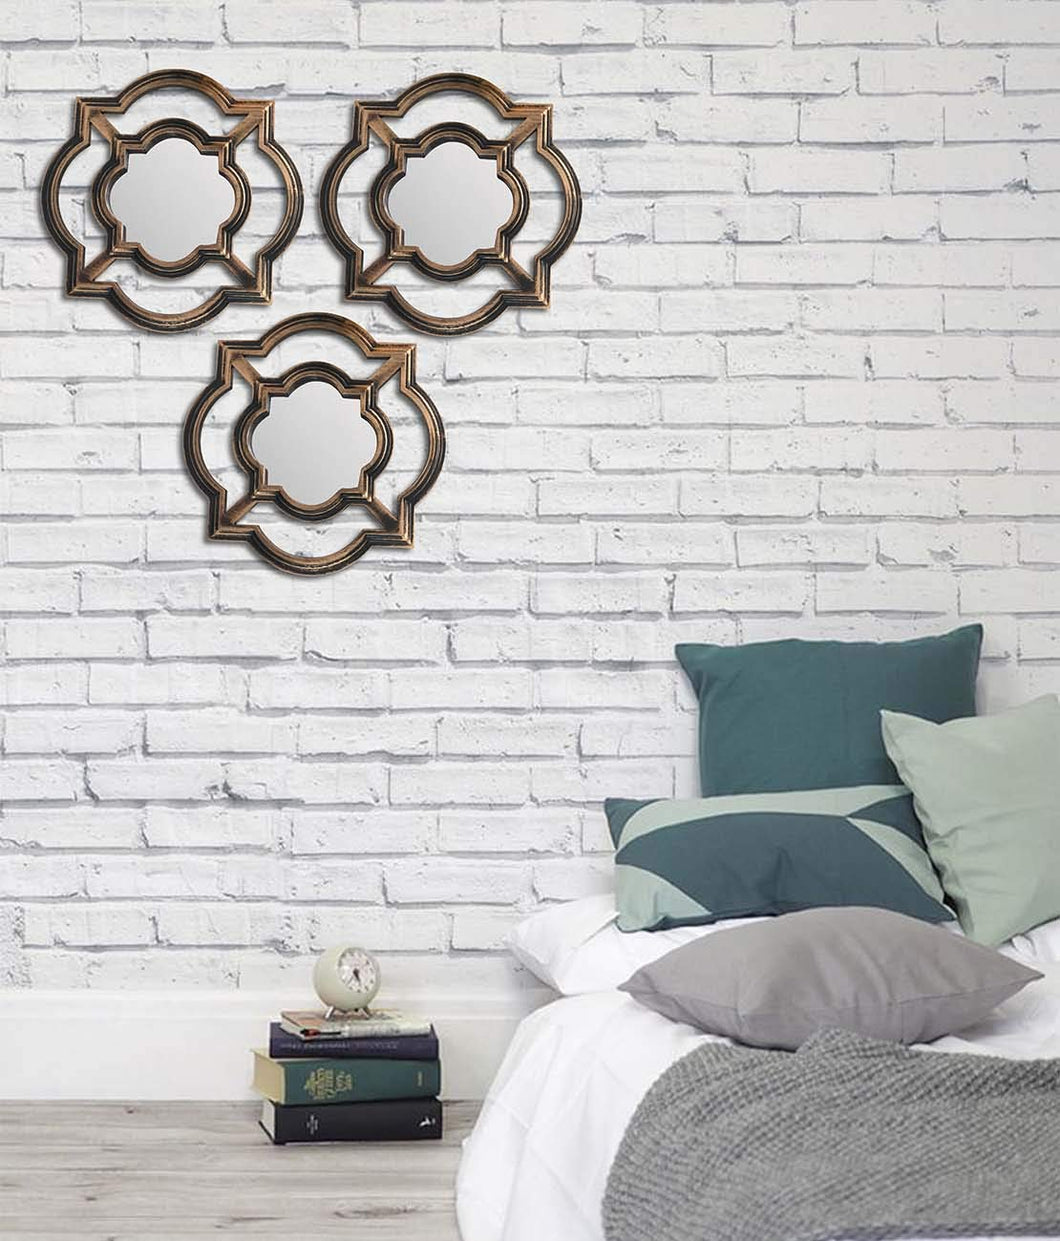 Art Street -Set of 3 Beautiful Large Mirror Decorative in Round Shape (11 x 11 Inchs)